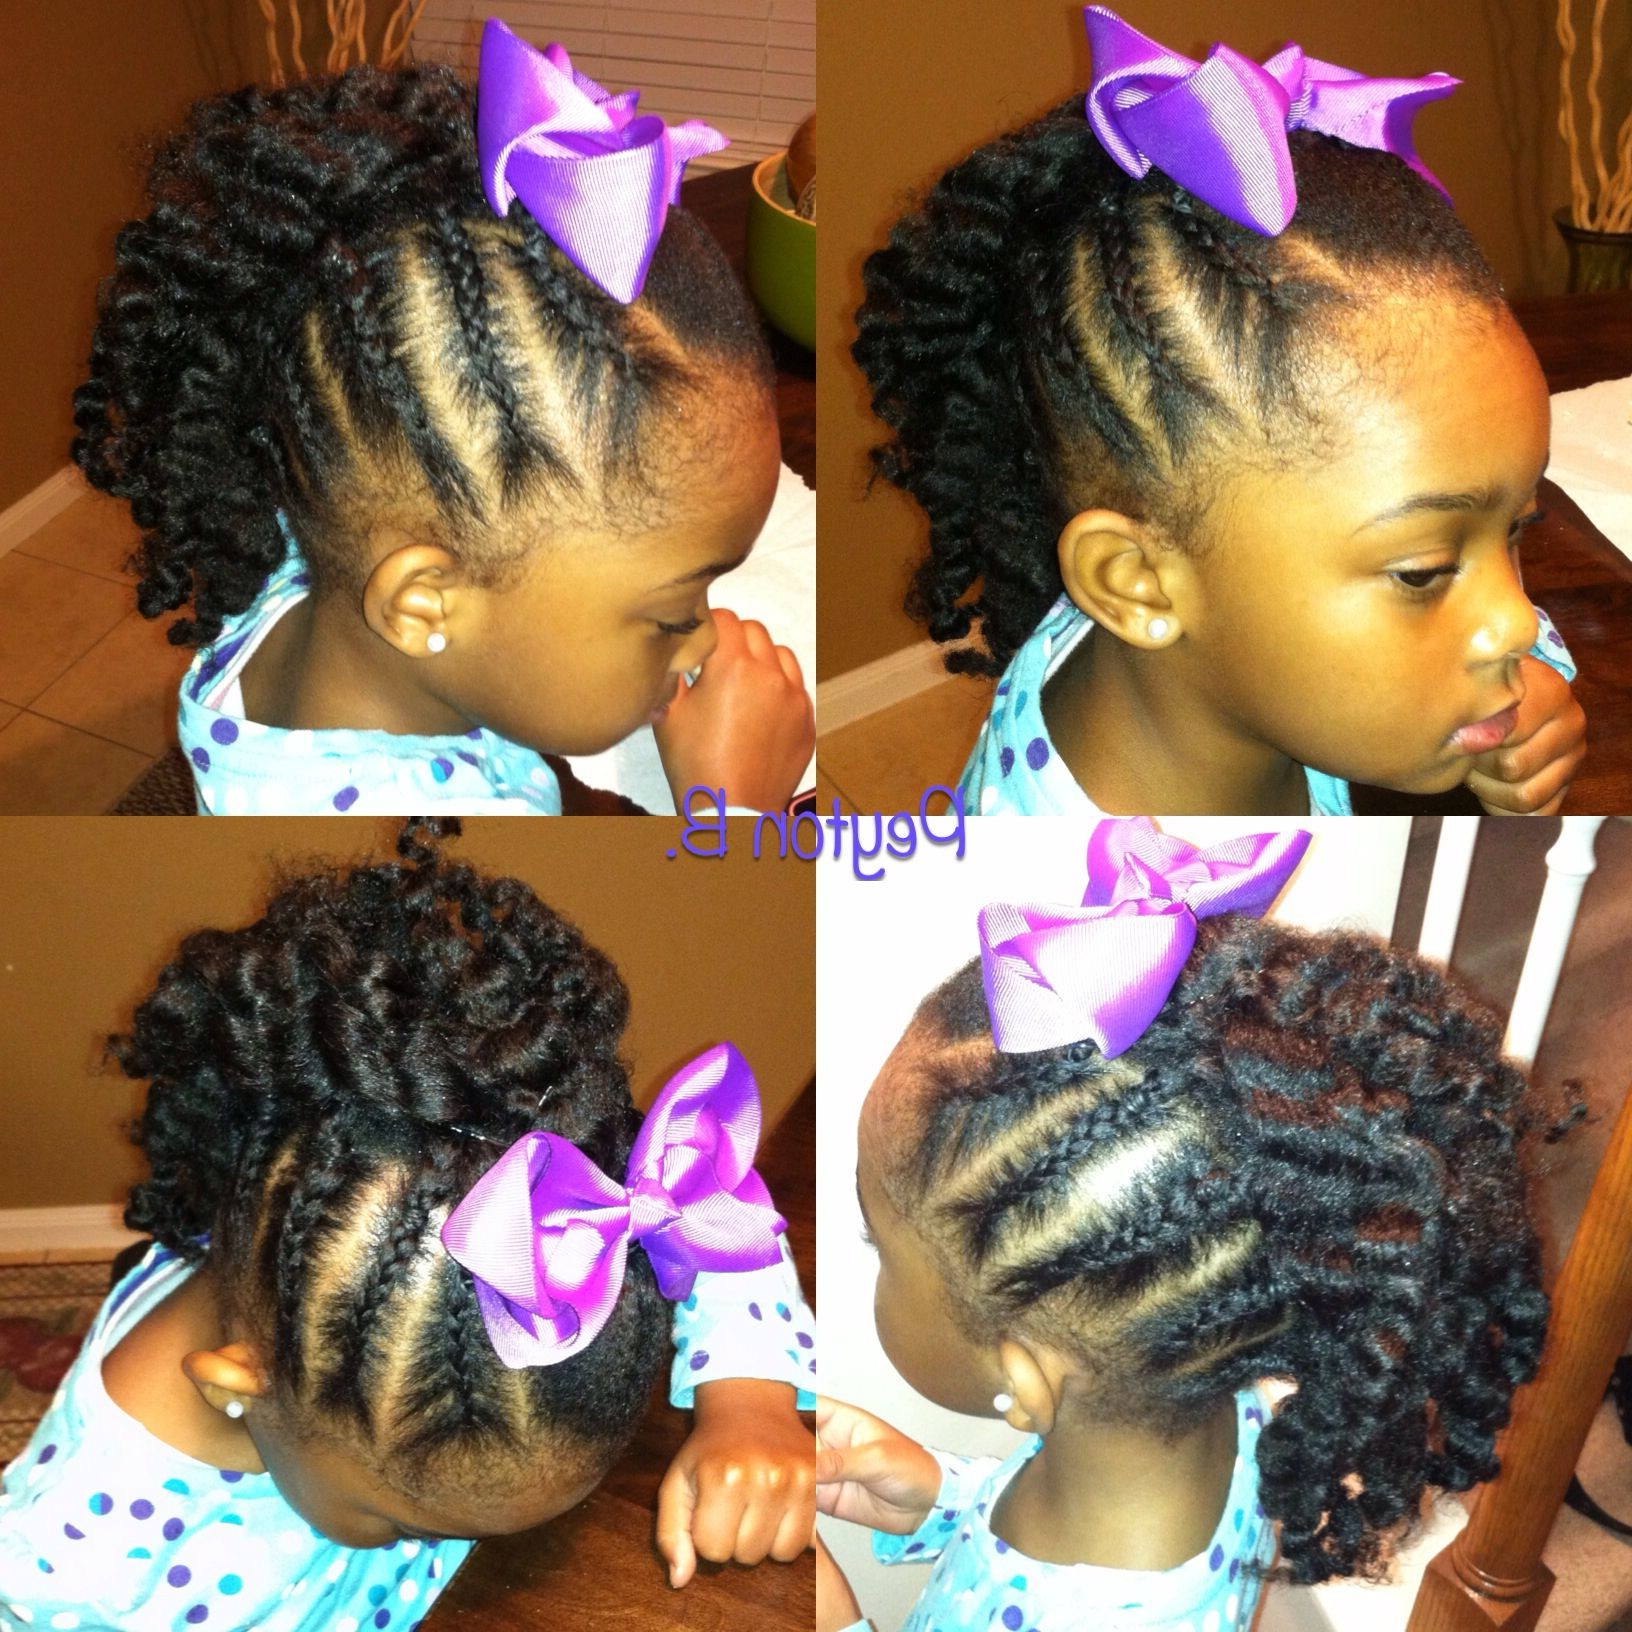 39 New Braided Mohawk Hairstyles For Little Girls Pics (View 2 of 20)